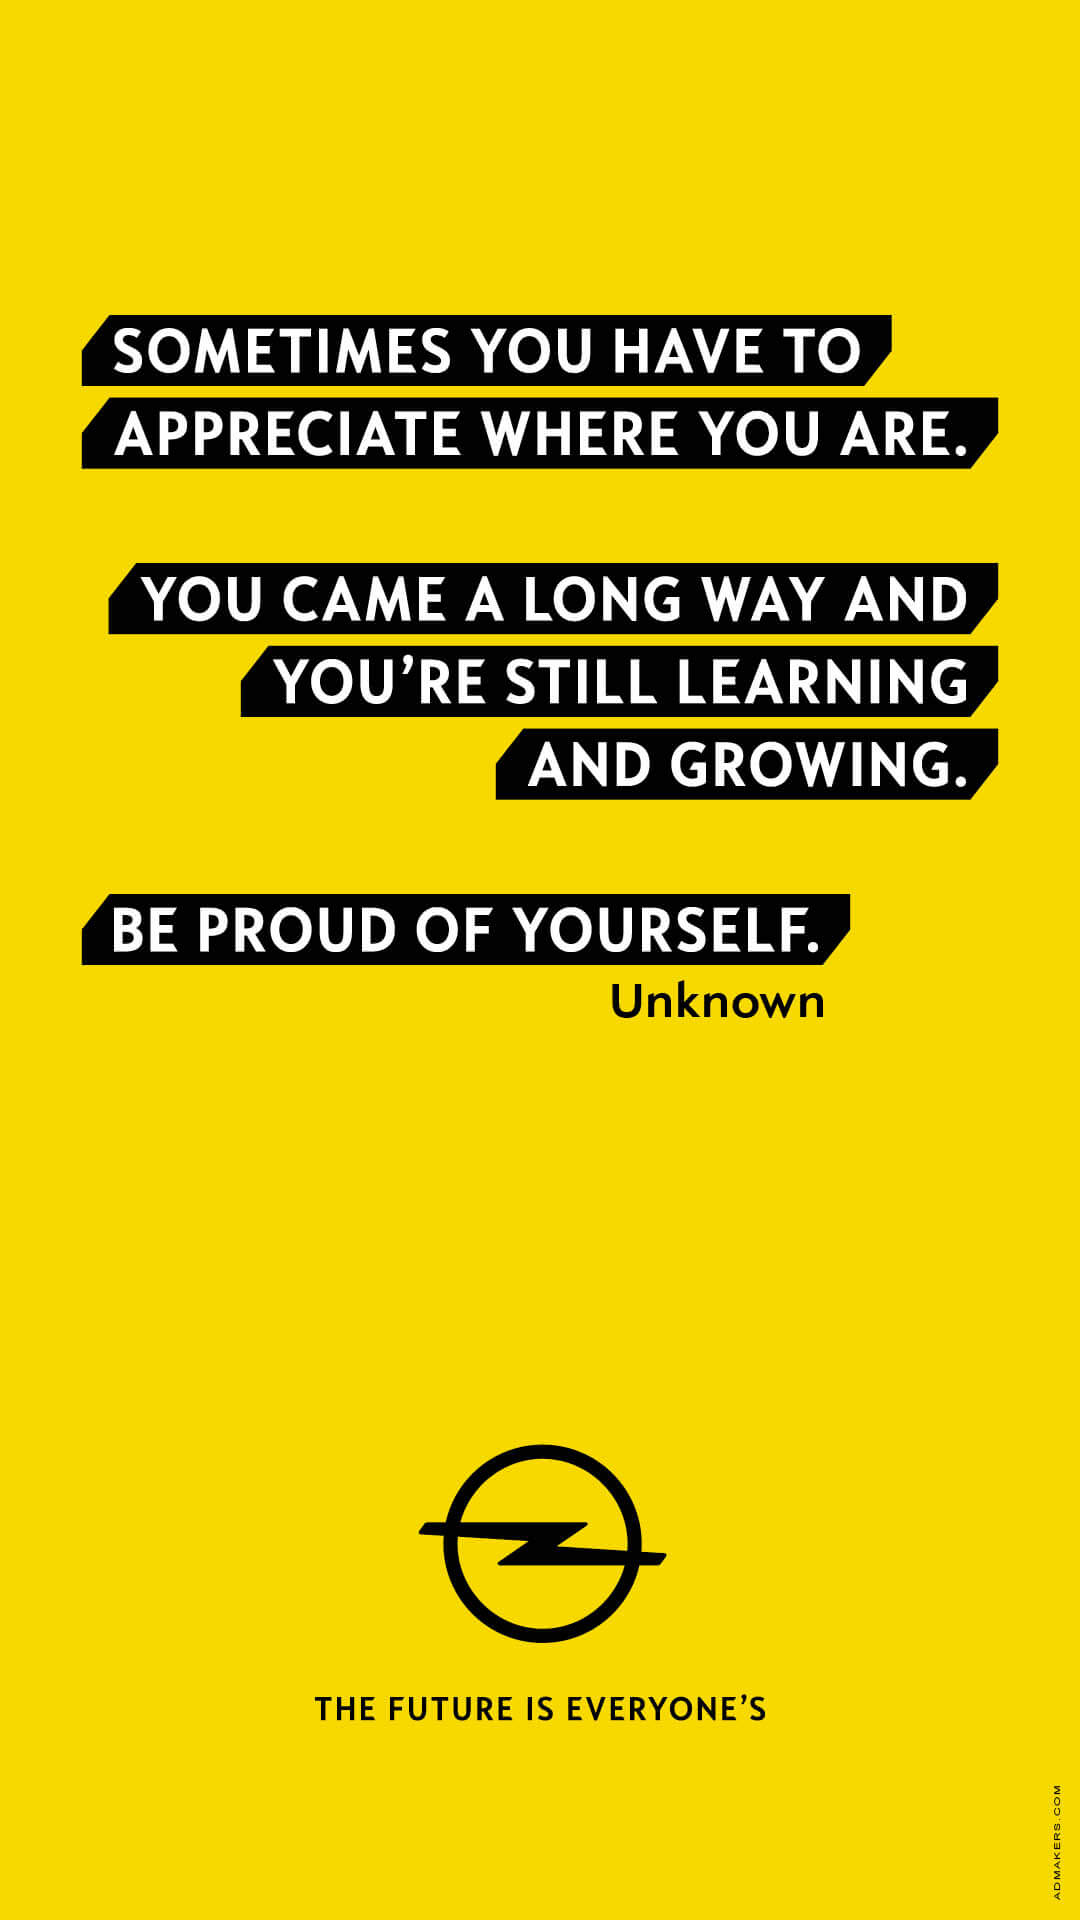 Sometimes you have to appreciate where you are. You came a long way and you're still learning and growing. Be proud of yourself.